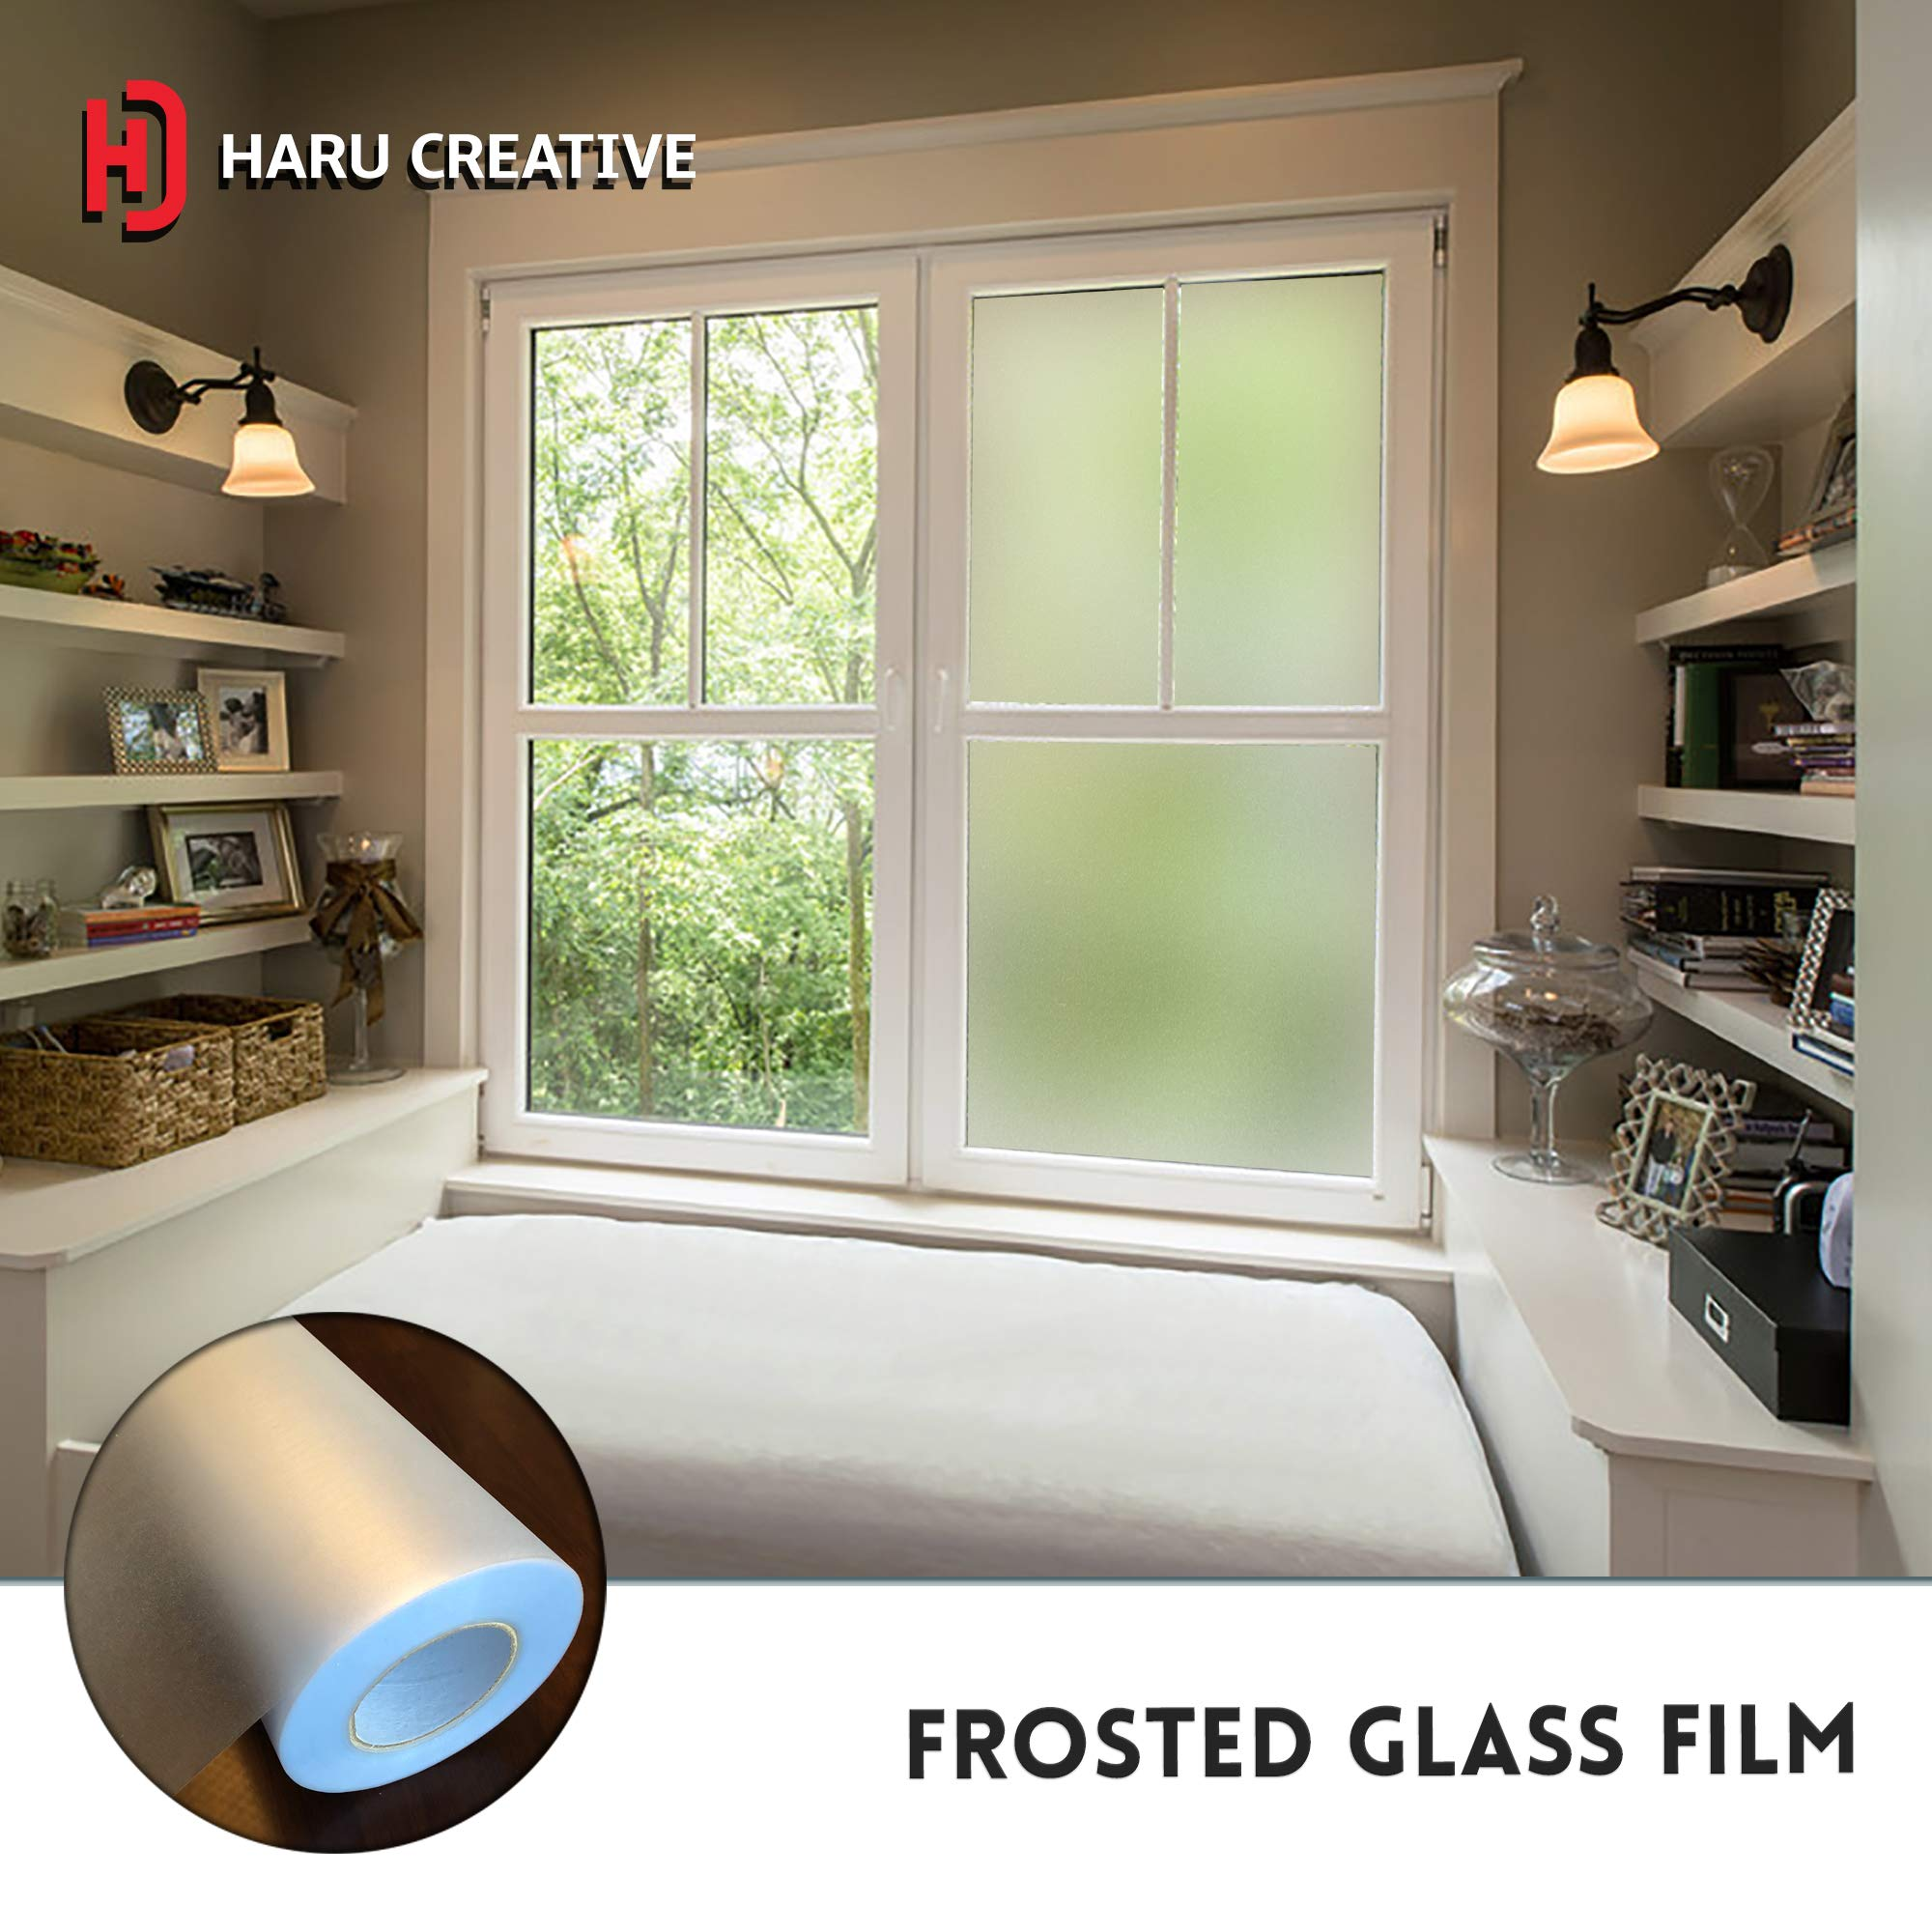 Haru Creative - Privacy Decorative Window Glass Frost Static Cling Adhesive Reusable Film Vinyl for Home Rooms Bathroom Work Space Office - Winter Frosted White Color (4FT x 8FT) by Haru